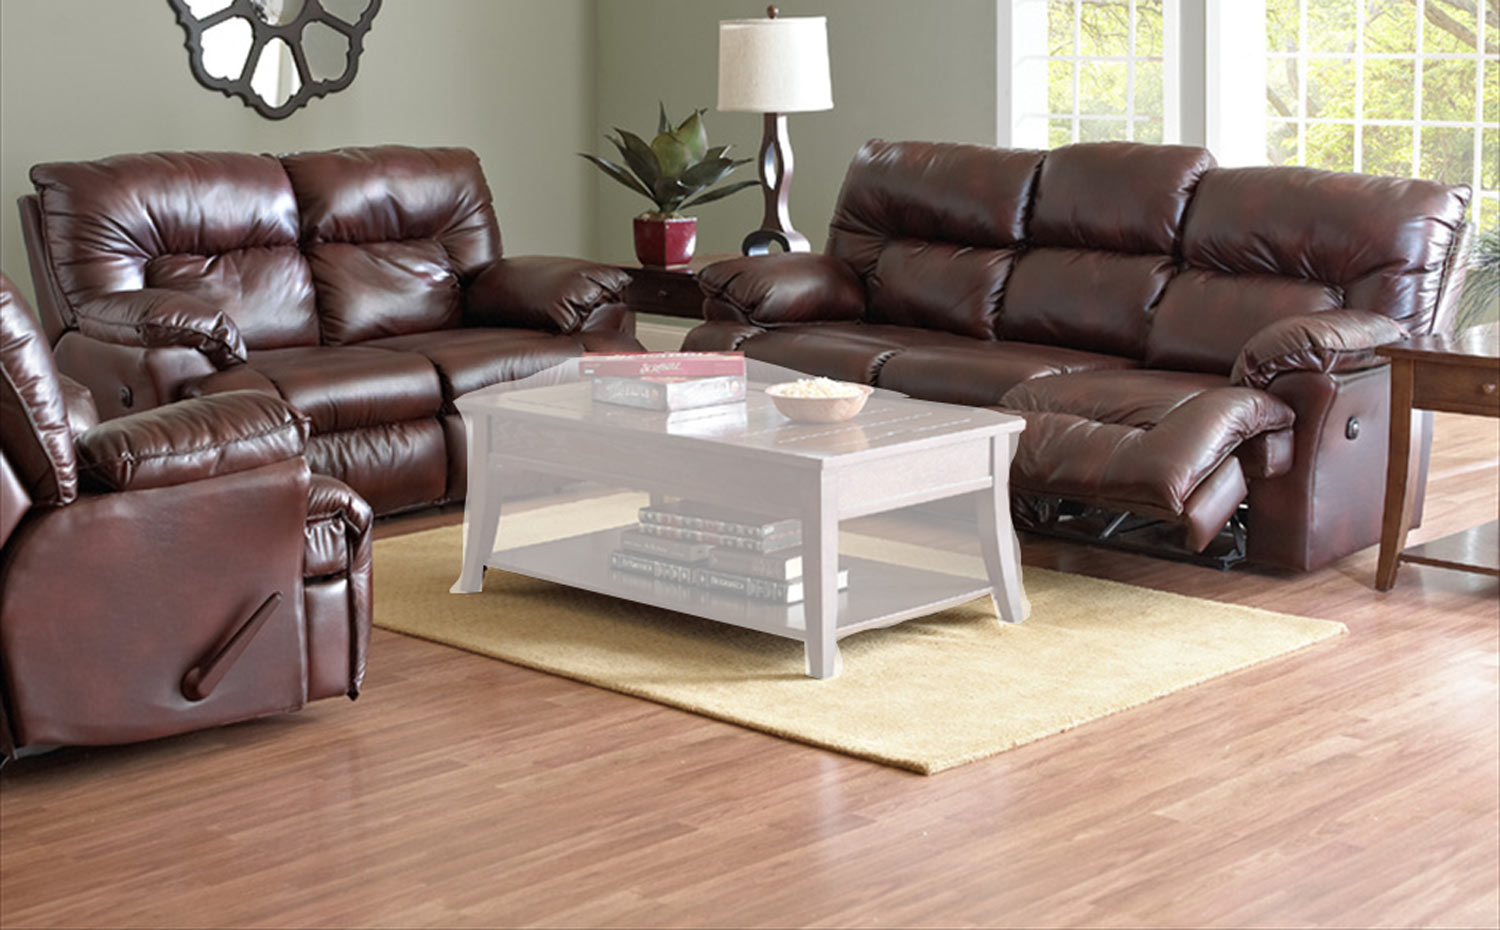 laramie sofa reviews make your own slipcover klaussner reclining set raleigh tobacco